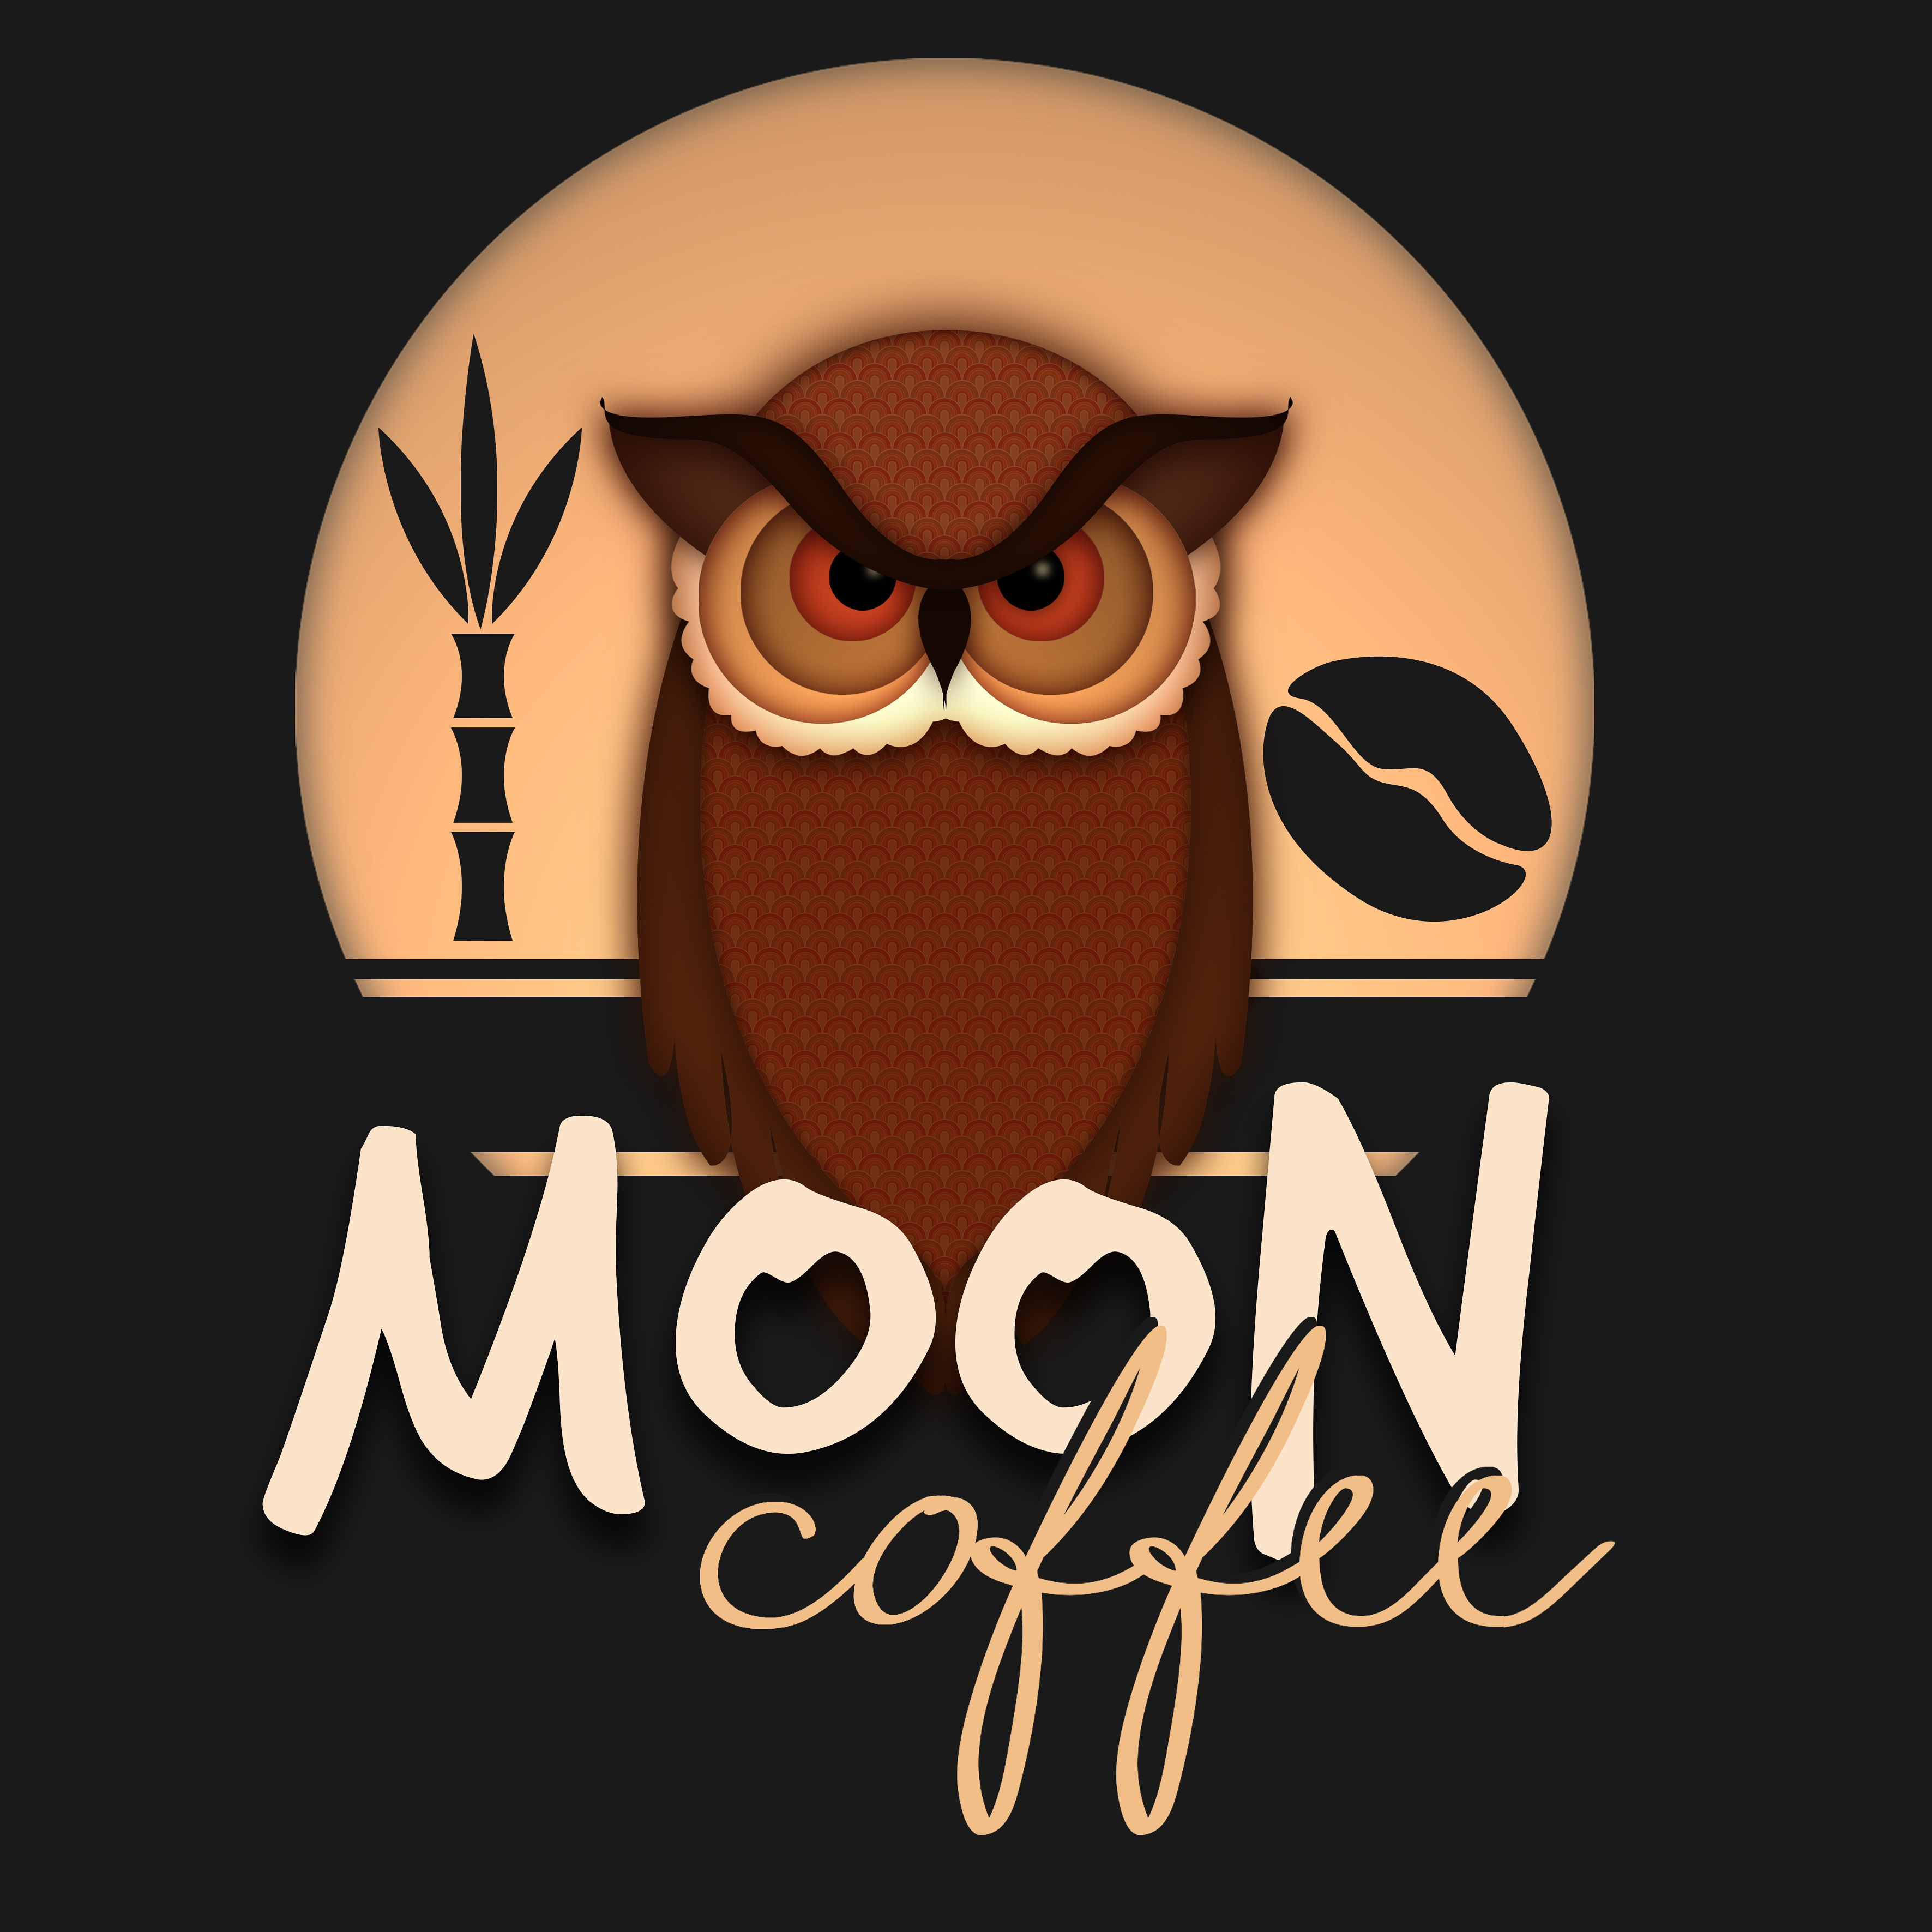 MOON Coffee